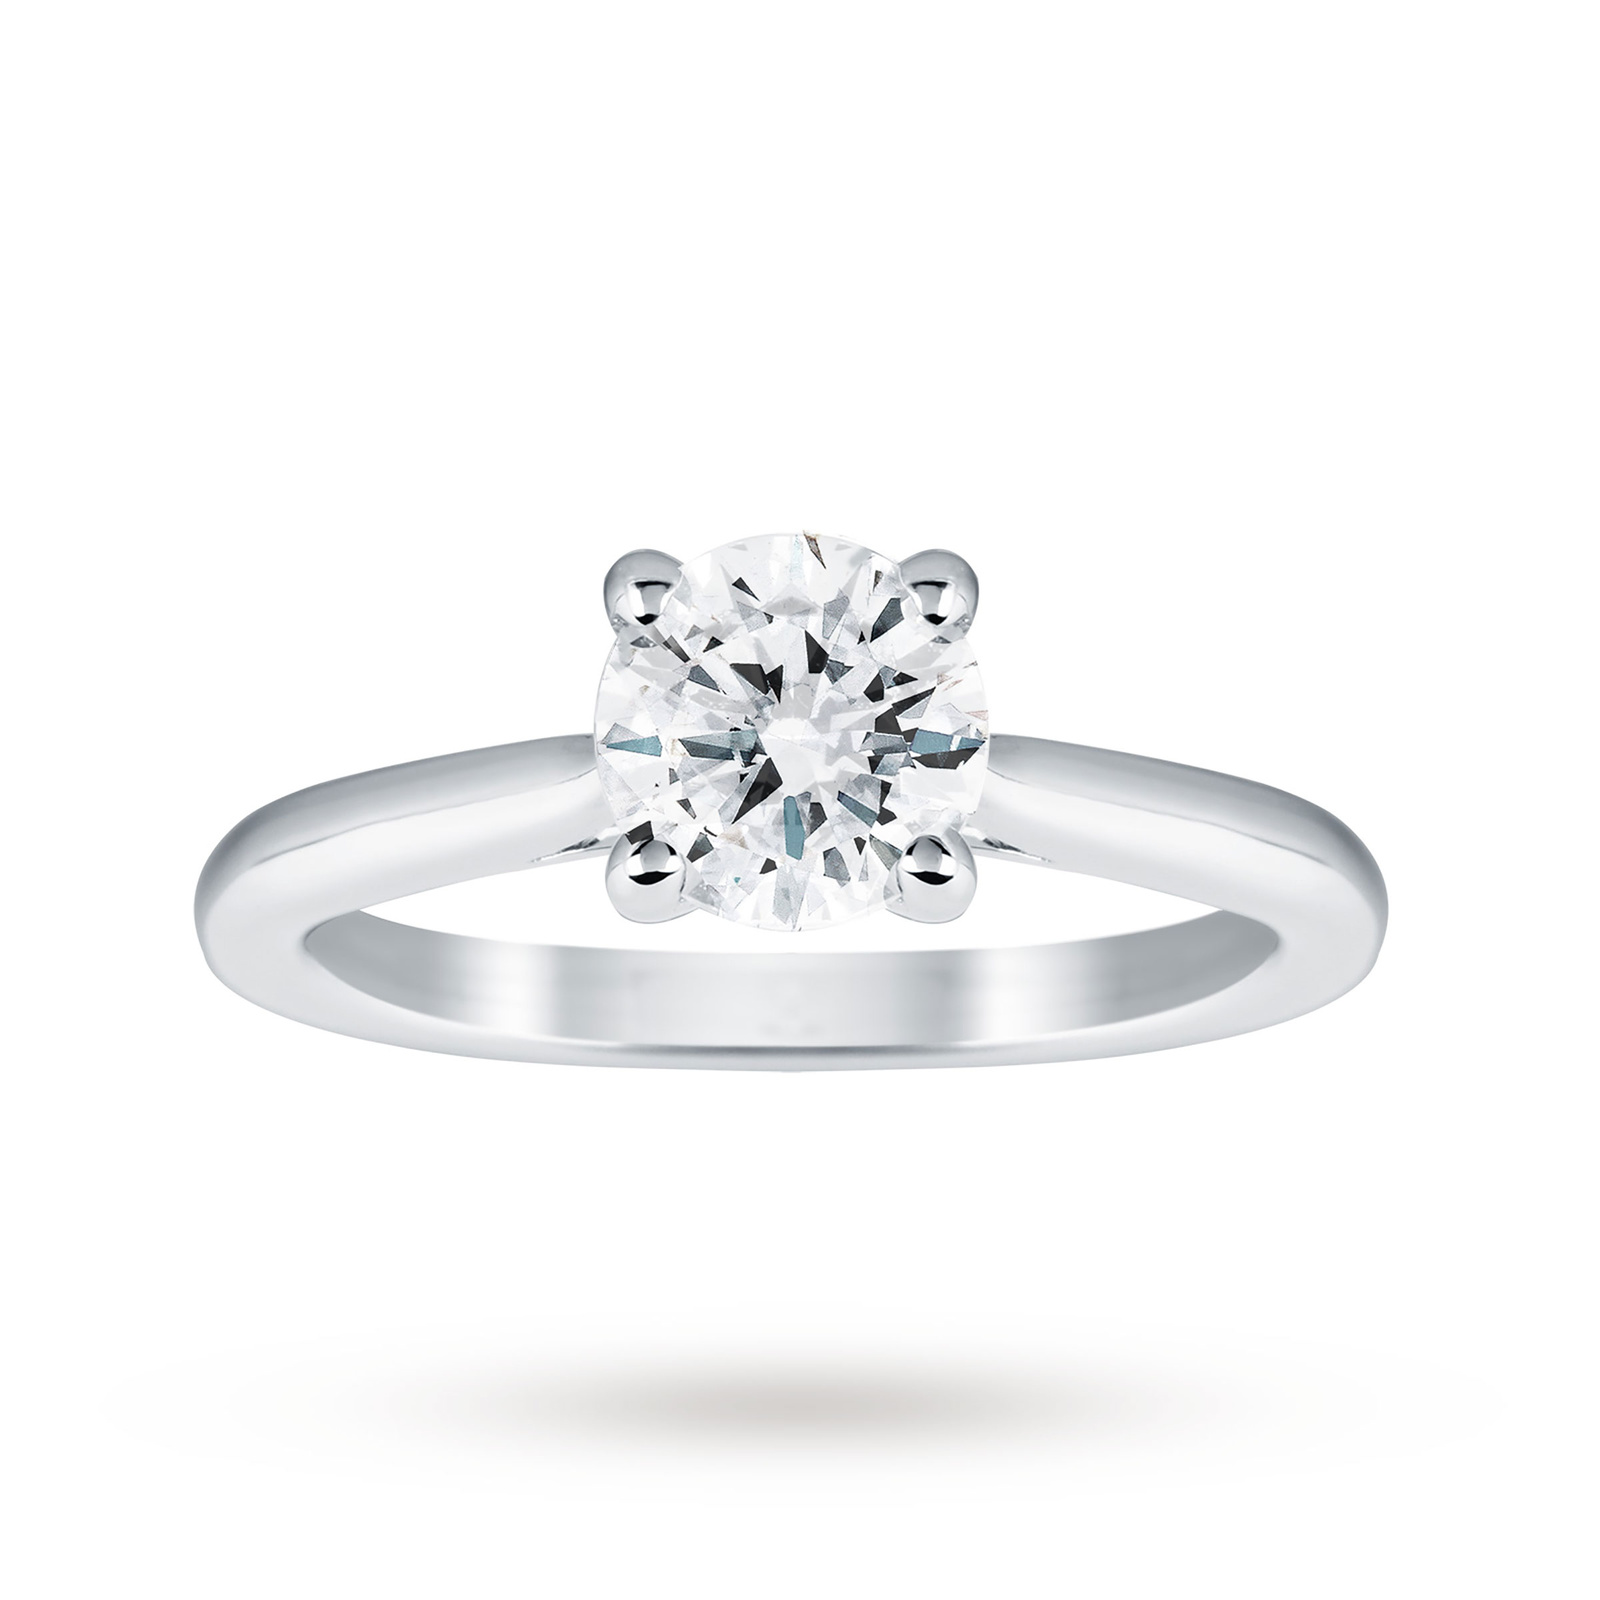 engagment pave engagement for jewellery jl prongs shank ring on diamond setting solitaire products pt the in with women view diamonds perspective accents small pointer platinum